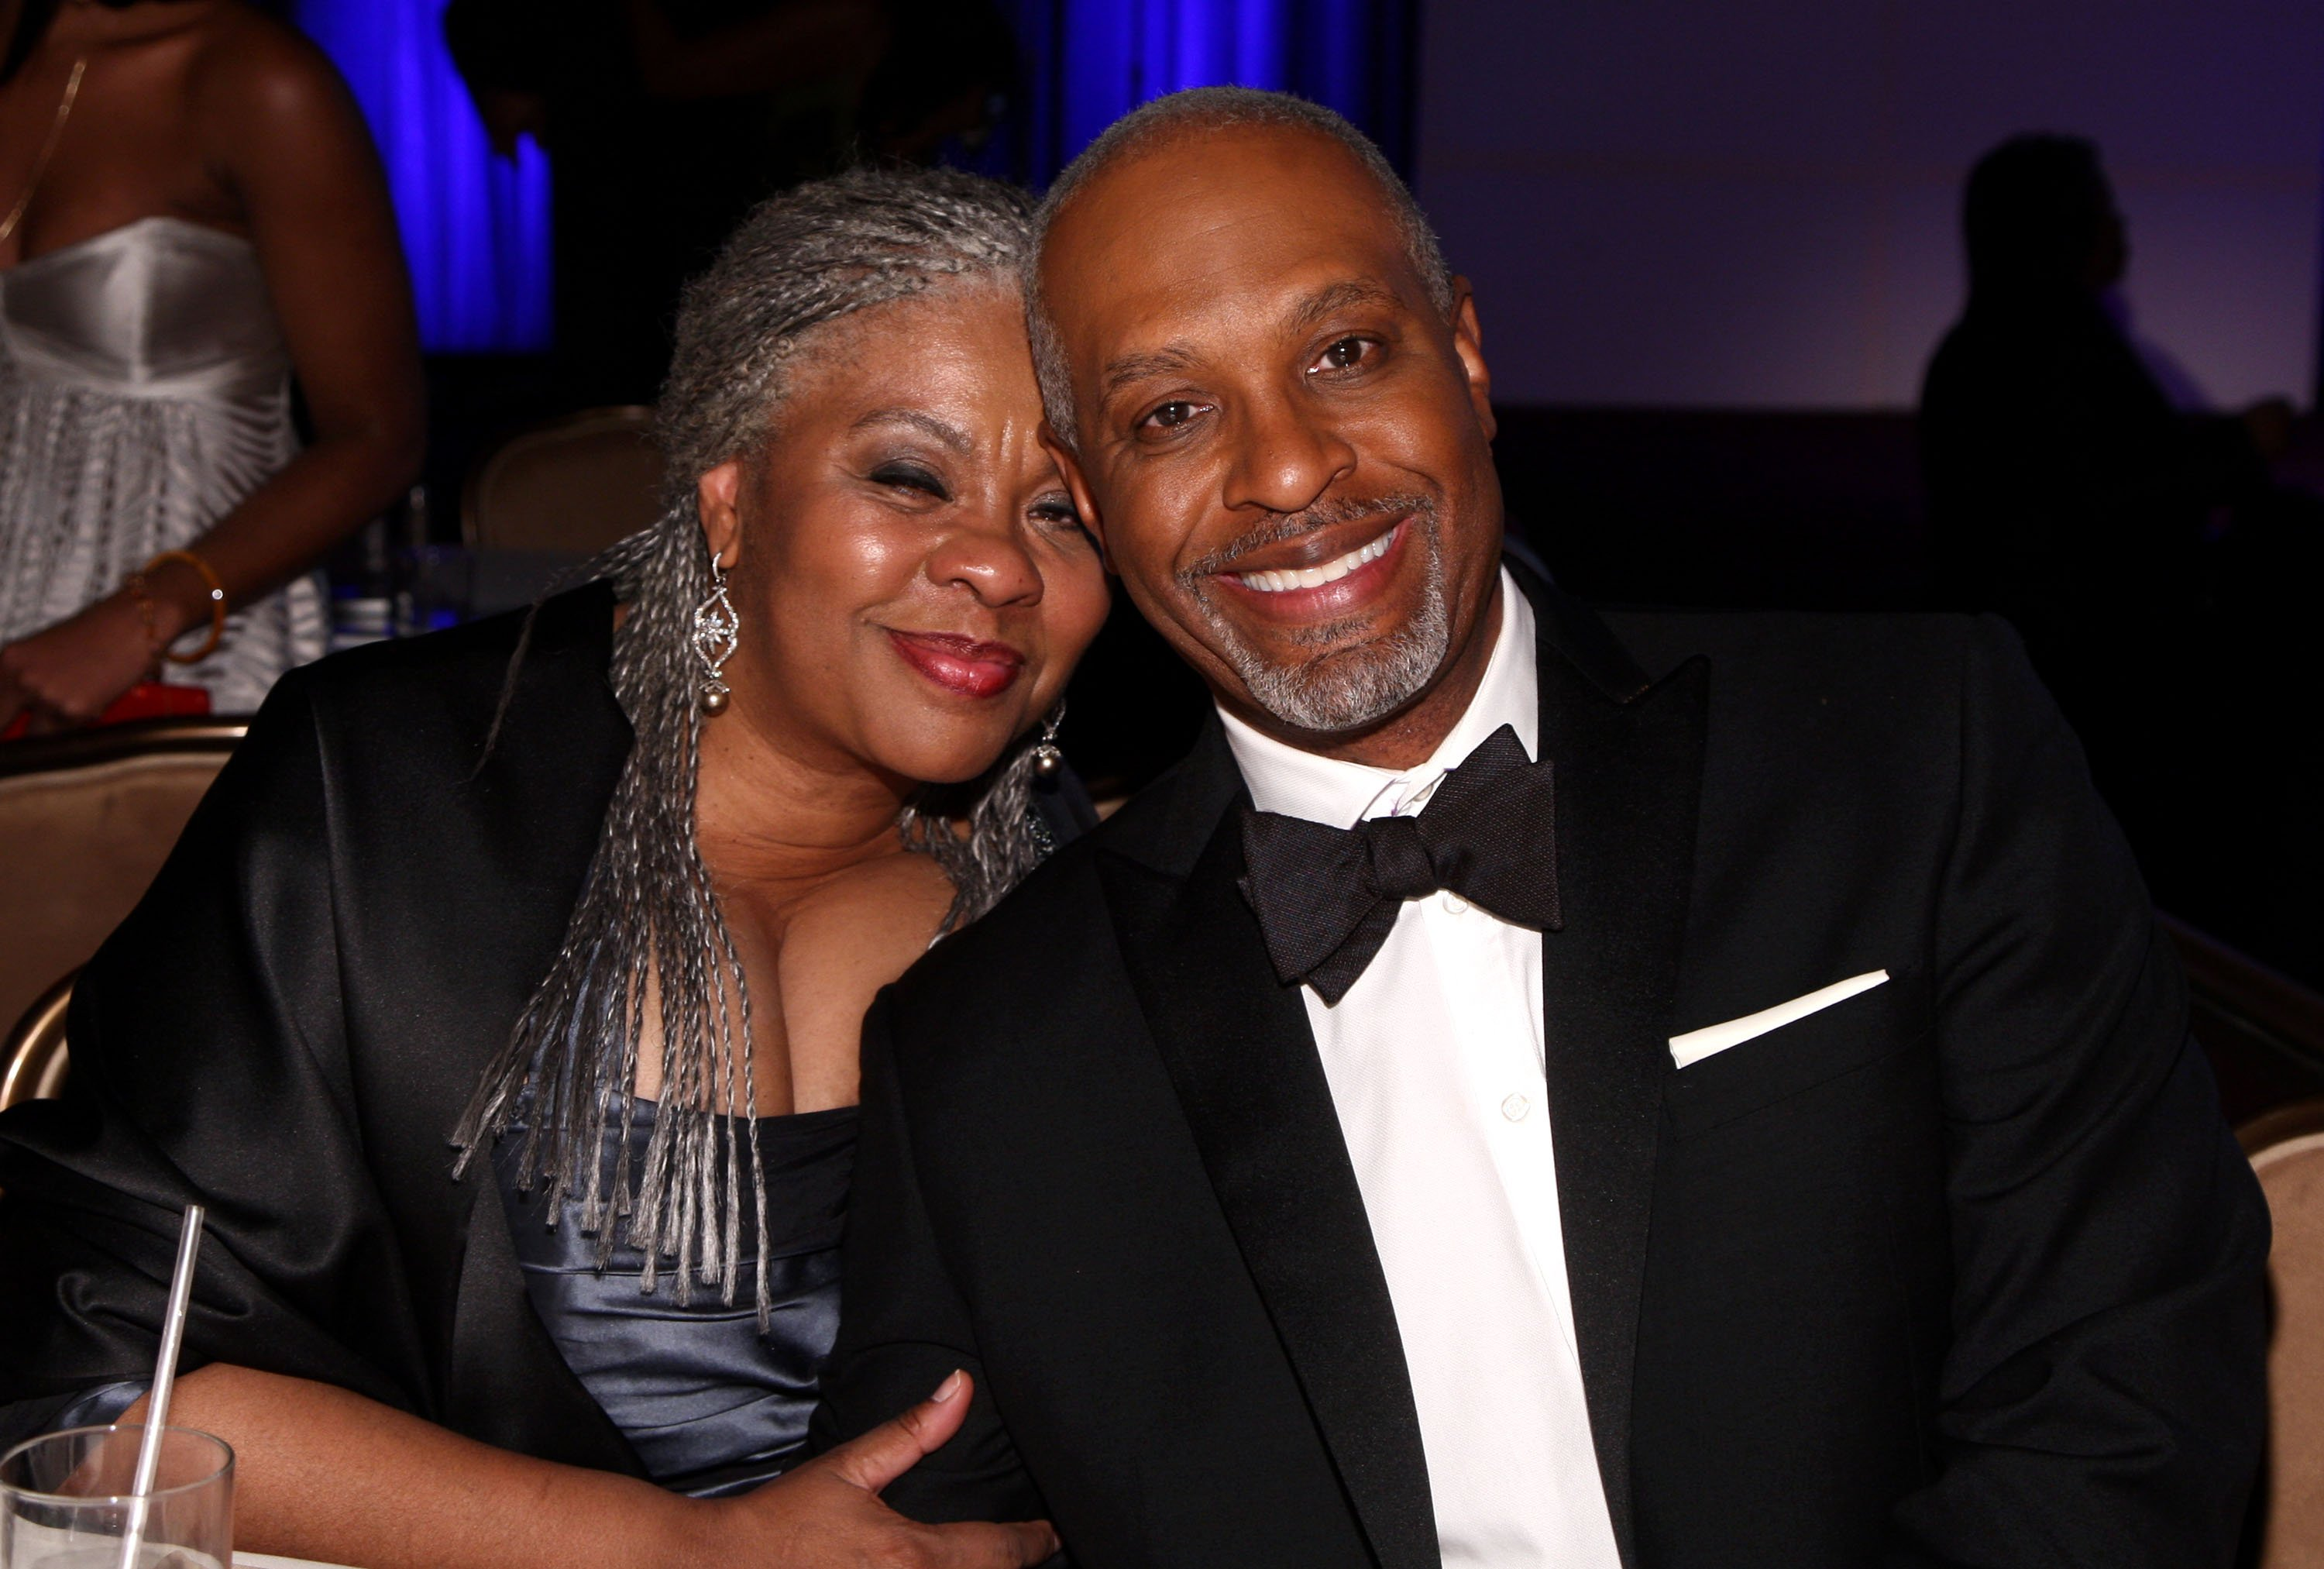 James Pickens Jr. and his wife Gina Pickens attend the 40th NAACP Image Awards after party at the Beverly Hilton Hotel in Los Angeles on February 12, 2009 | Photo: Getty Images